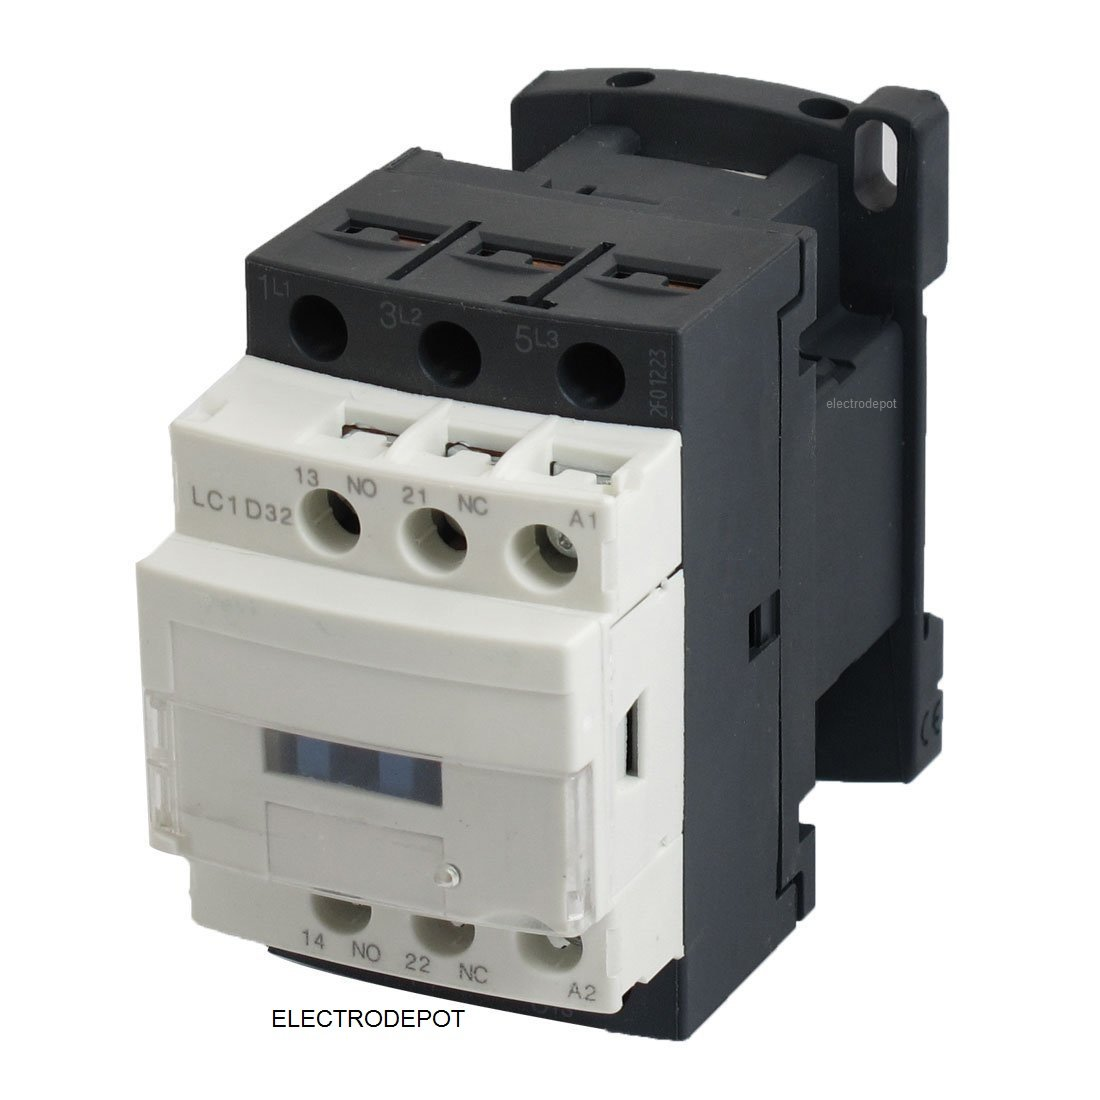 30A Contactor 3 Pole, 110/120V Coil, Motor load 32A, Lighting 40A, 50A,  600V IEC DIN: Amazon.com: Industrial & Scientific